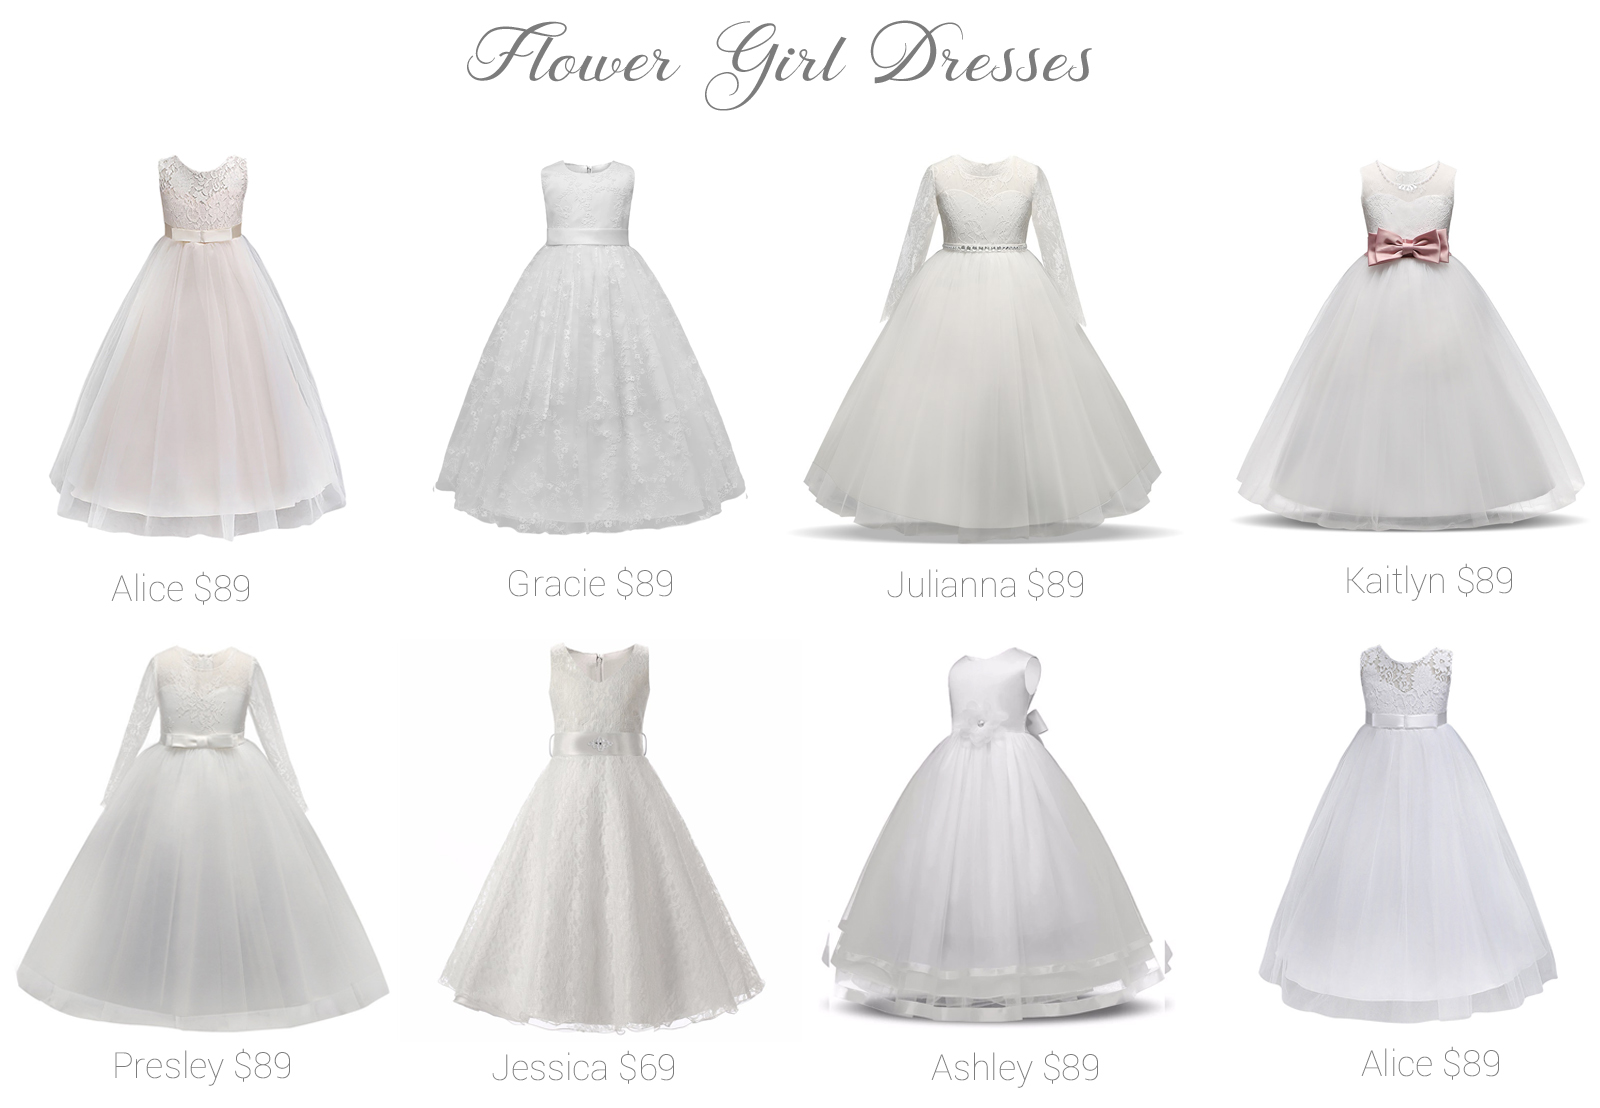 e8ecd36f20 Flower Girl Dresses! Shop online and in store! - Fashionably Yours